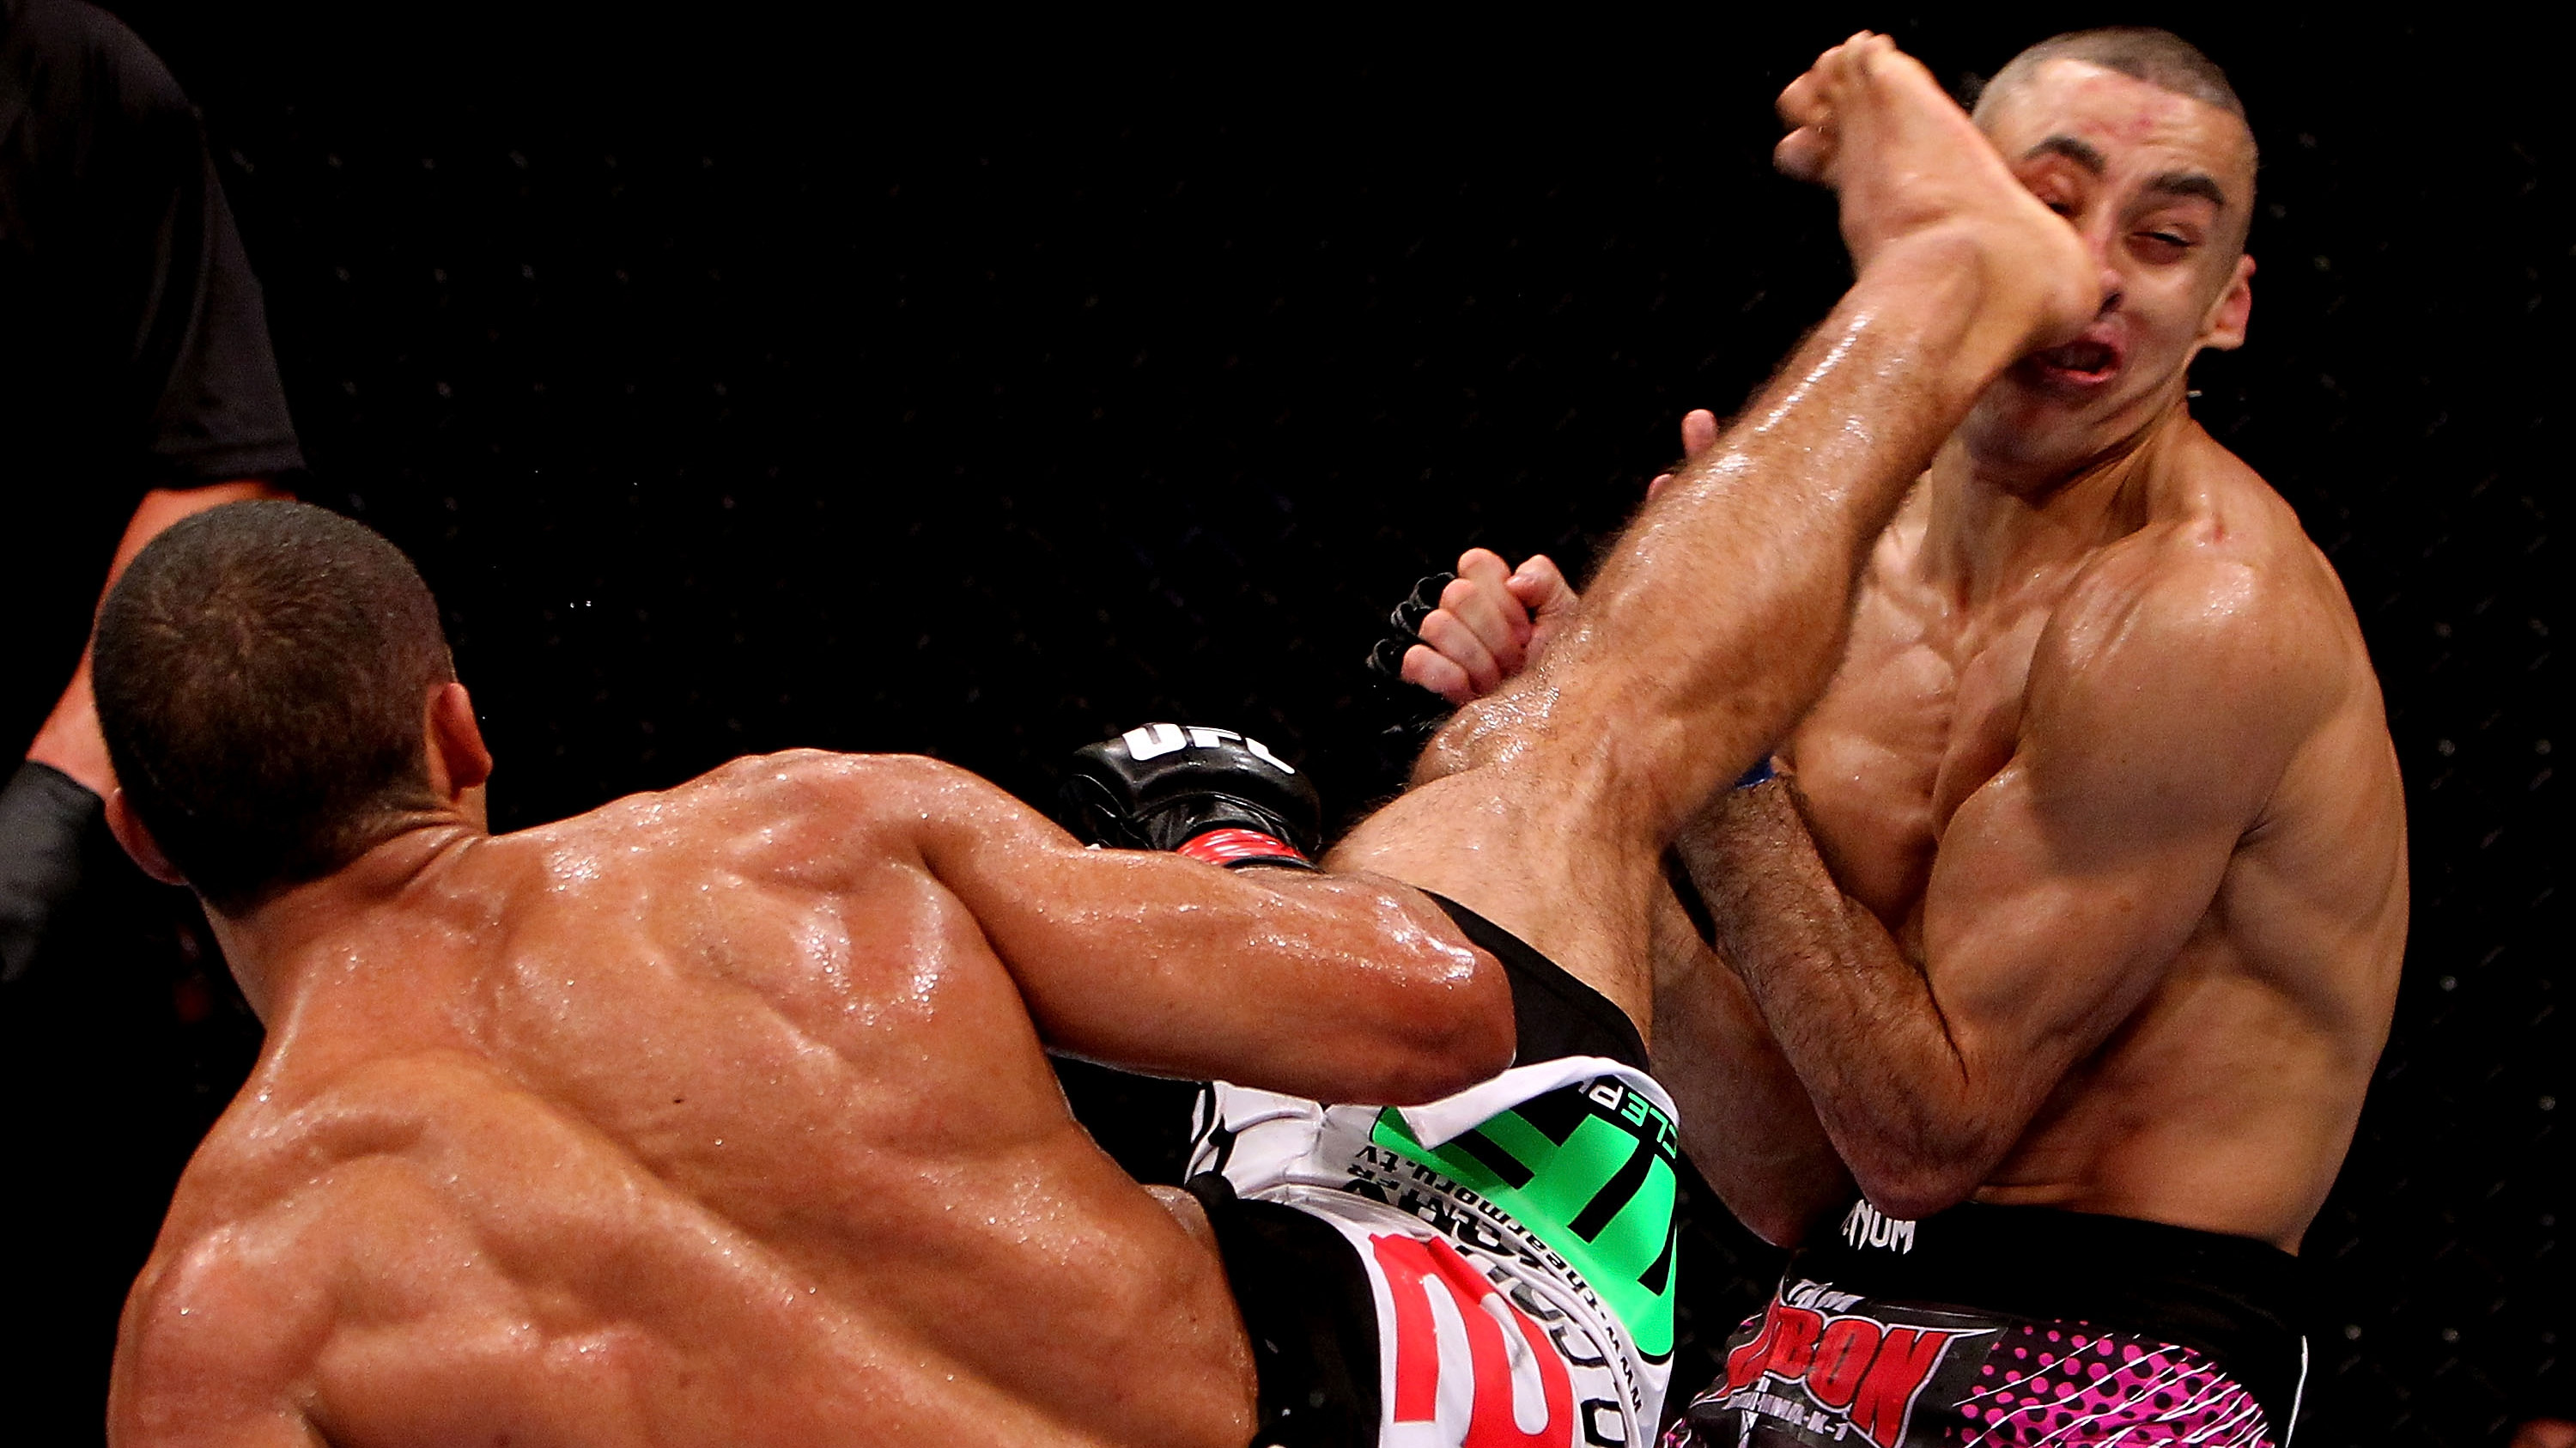 Edson Barboza (Photo by Josh Hedges/Zuffa LLC/Zuffa LLC via Getty Images)